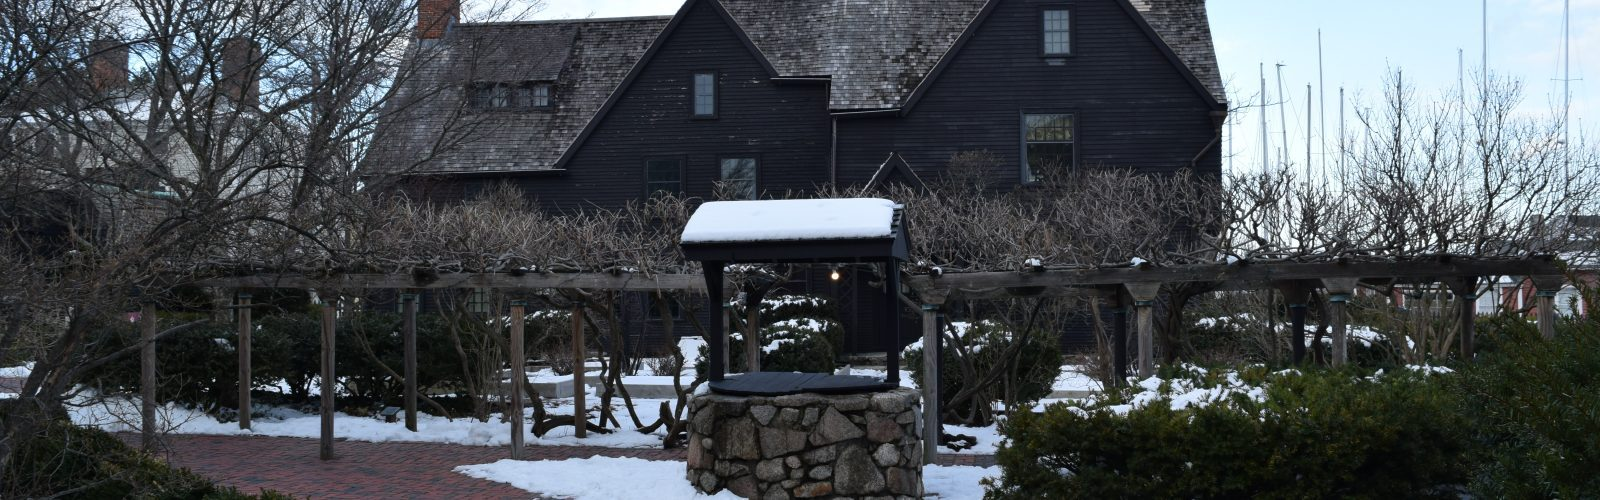 The House of the Seven Gables with snow